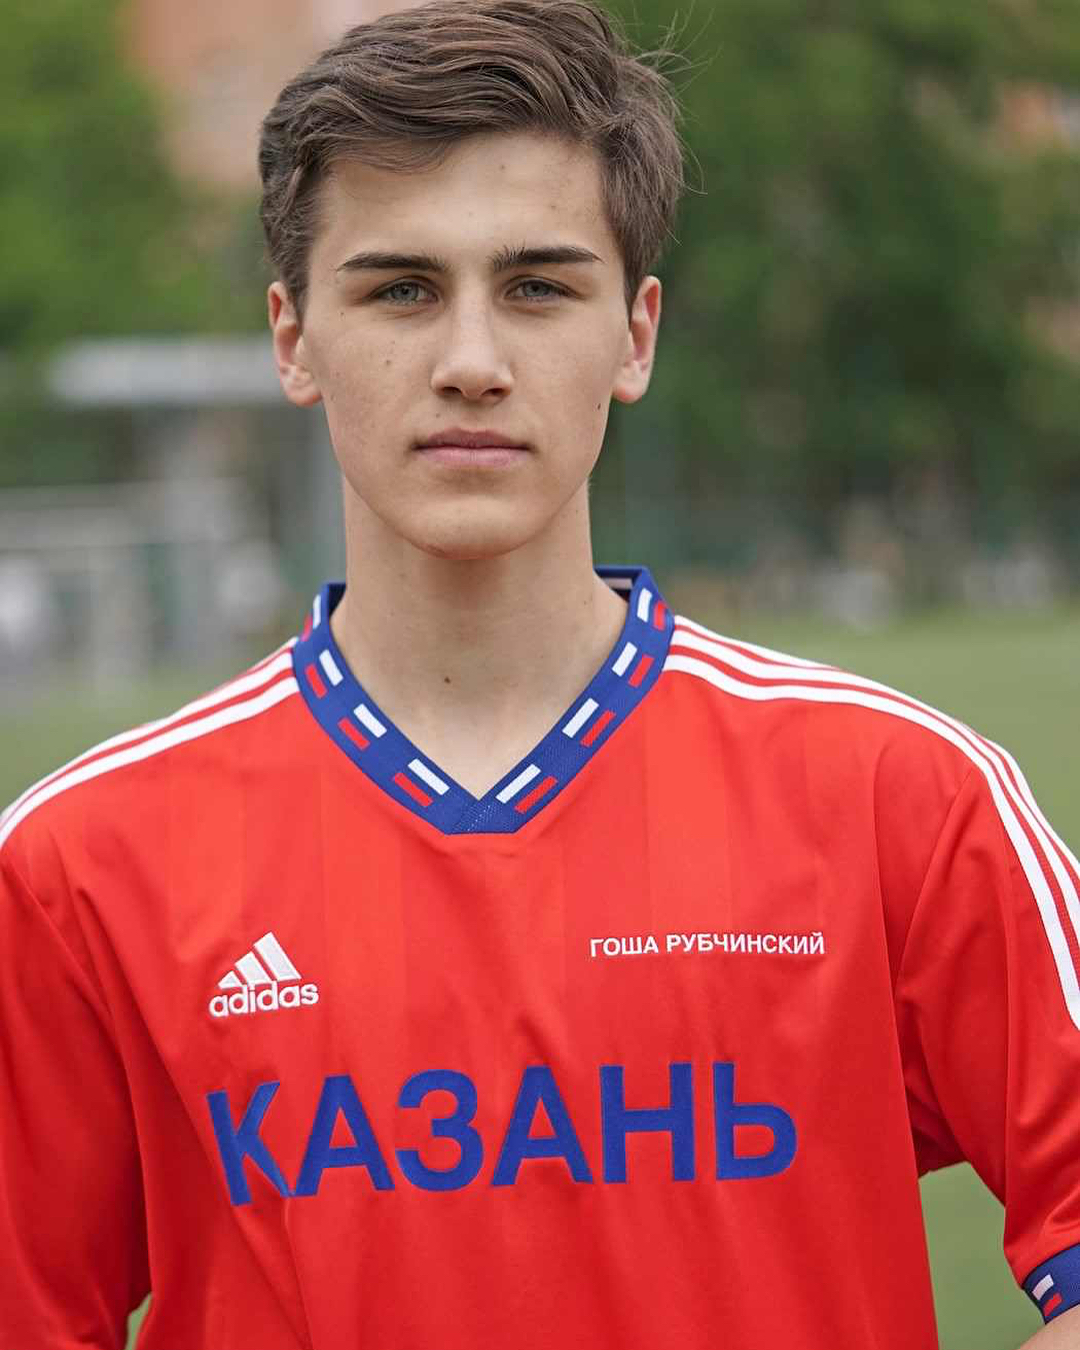 gosha-rubchinskiy-adidas-russia-world-cup-collection-release-20180614